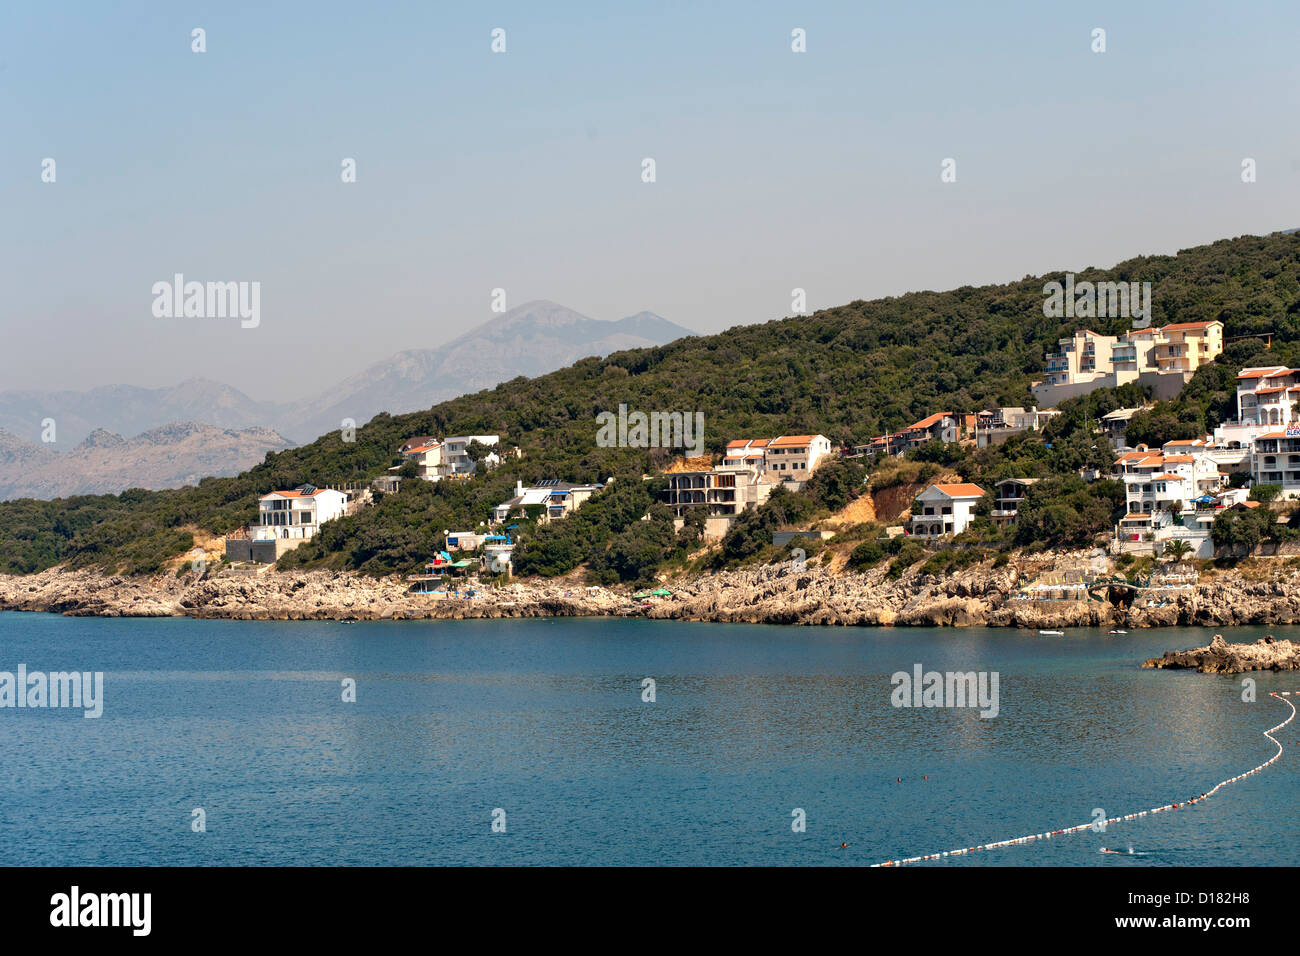 The Adriatic coastline along Montenegro's southern coast near the town of Bar. - Stock Image